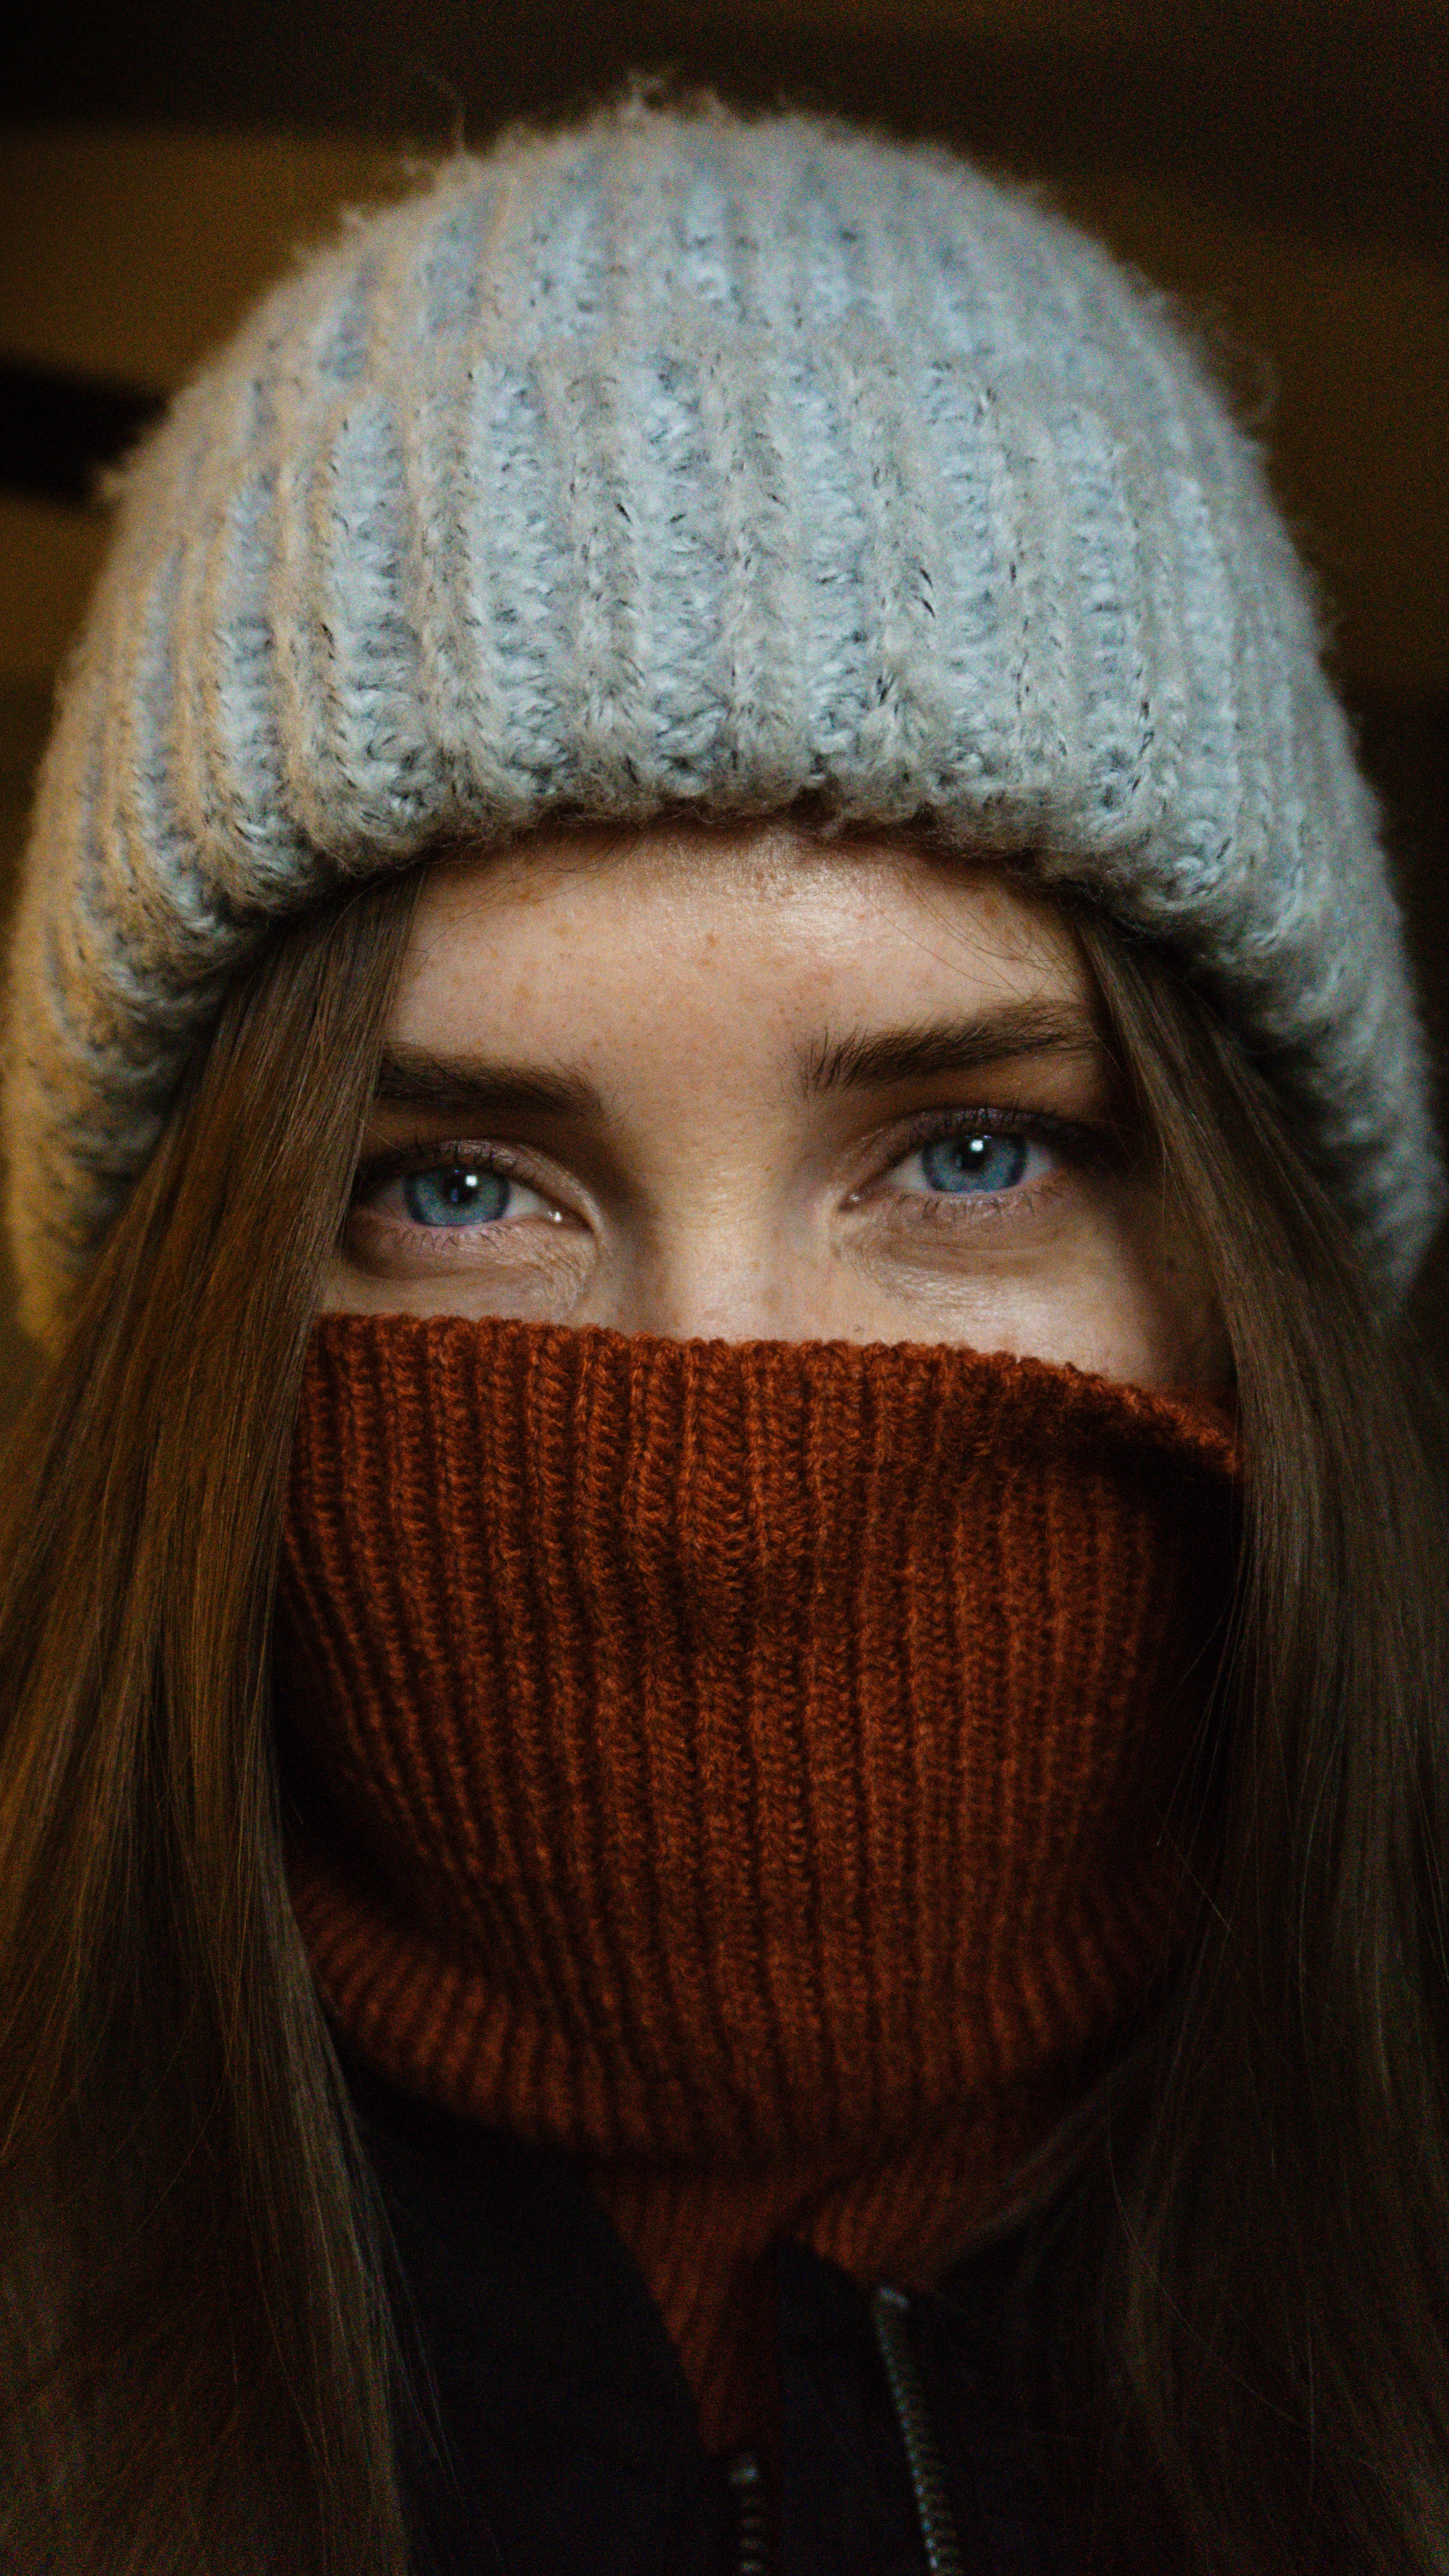 YOUR EYES ARE A COMPLIMENT TO THE NIGHT : BY NATHAN HAYNES stories